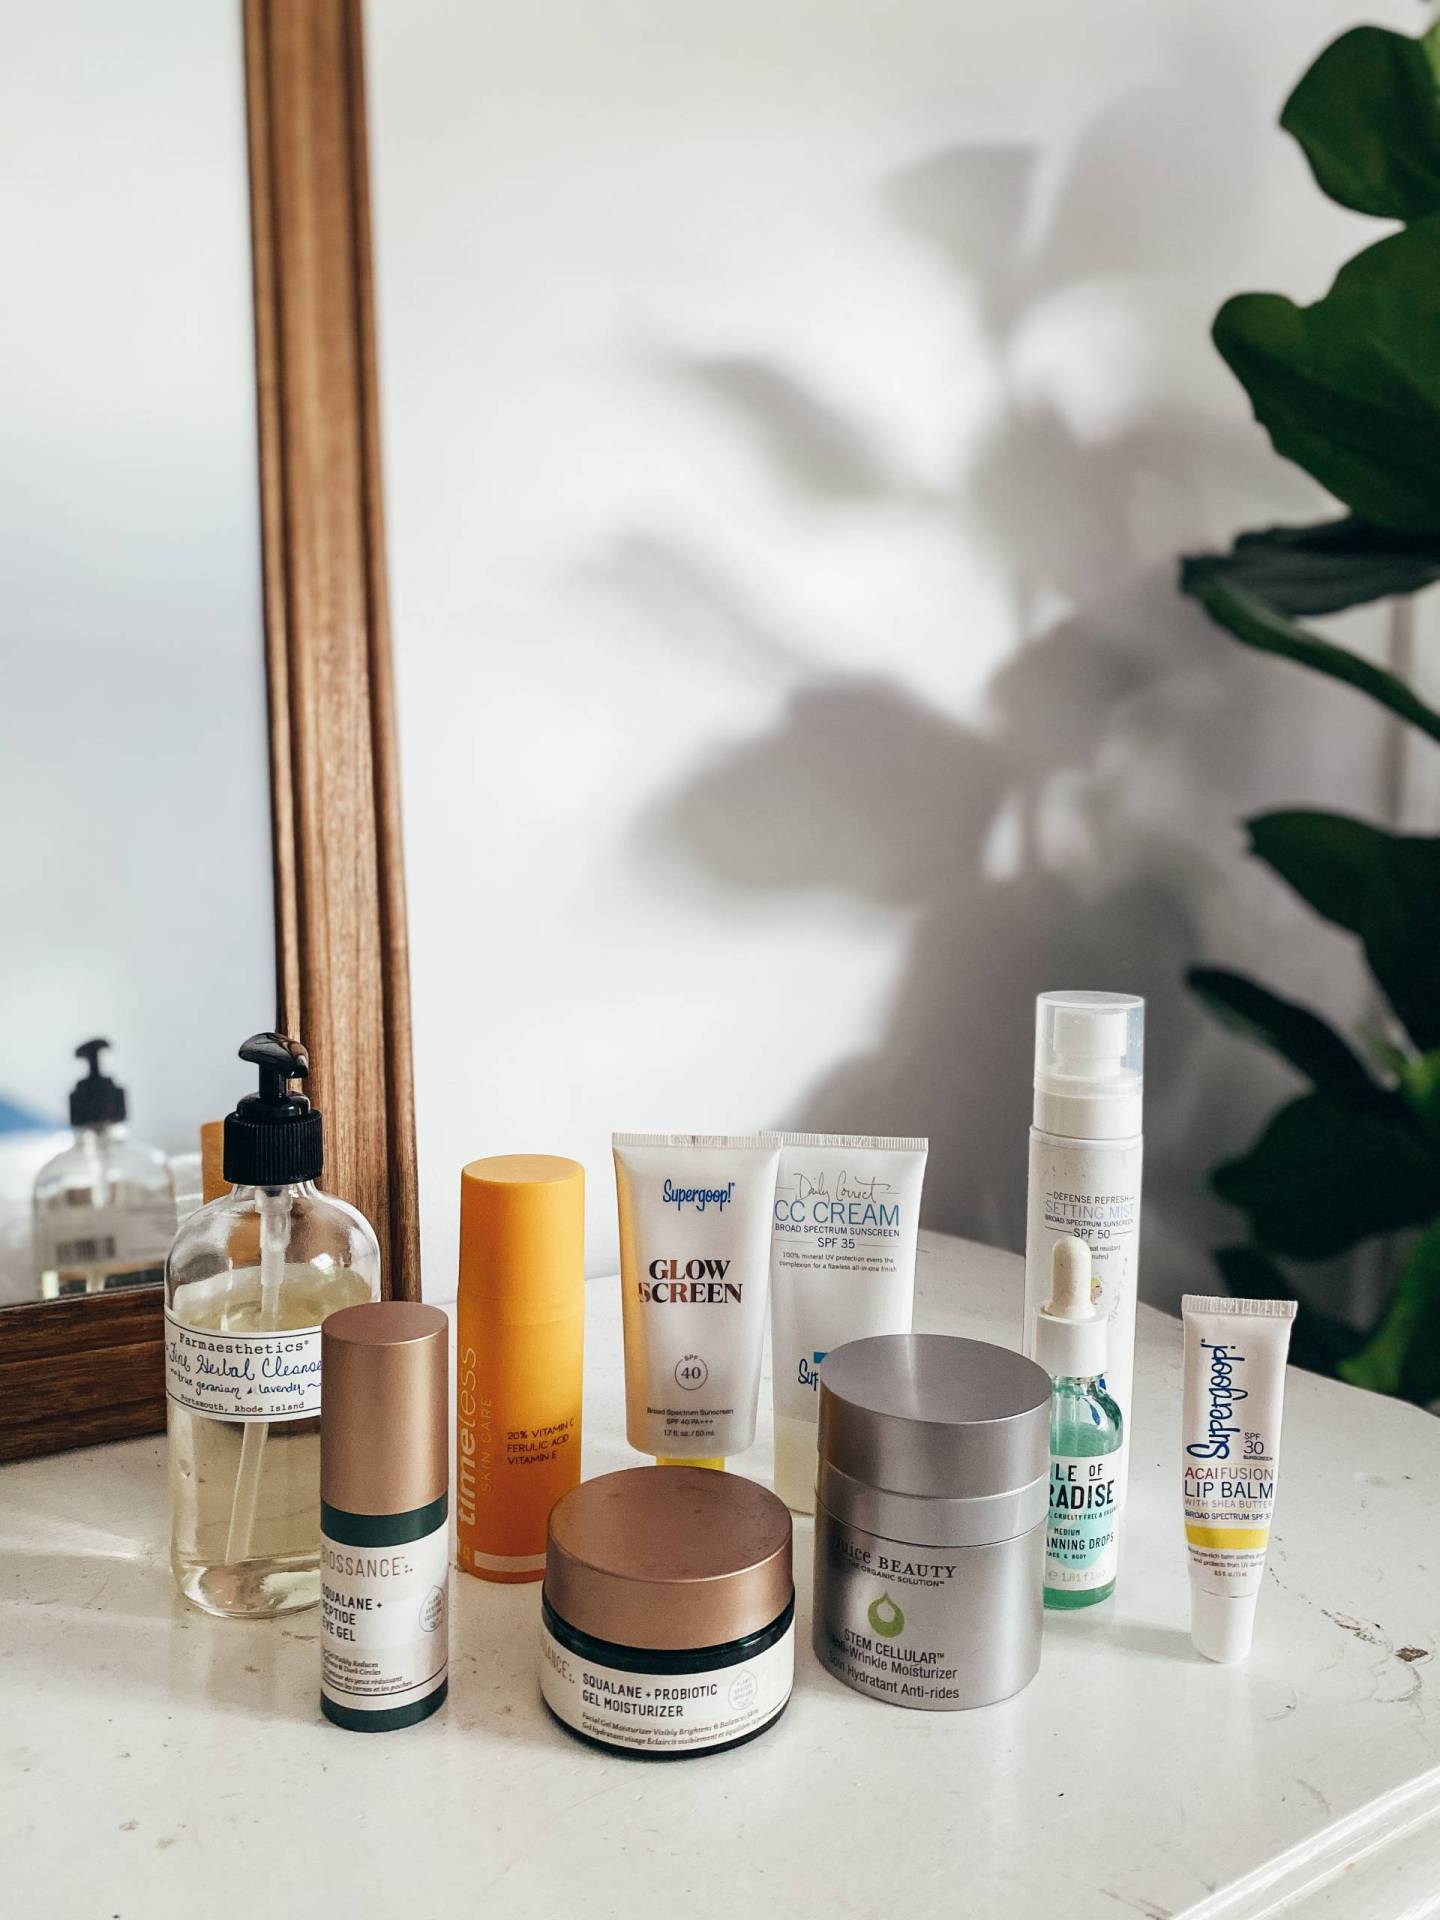 The non-toxic products in my morning skincare routine will keep your skin healthy and glowing without harsh chemicals or endocrine disruptors!